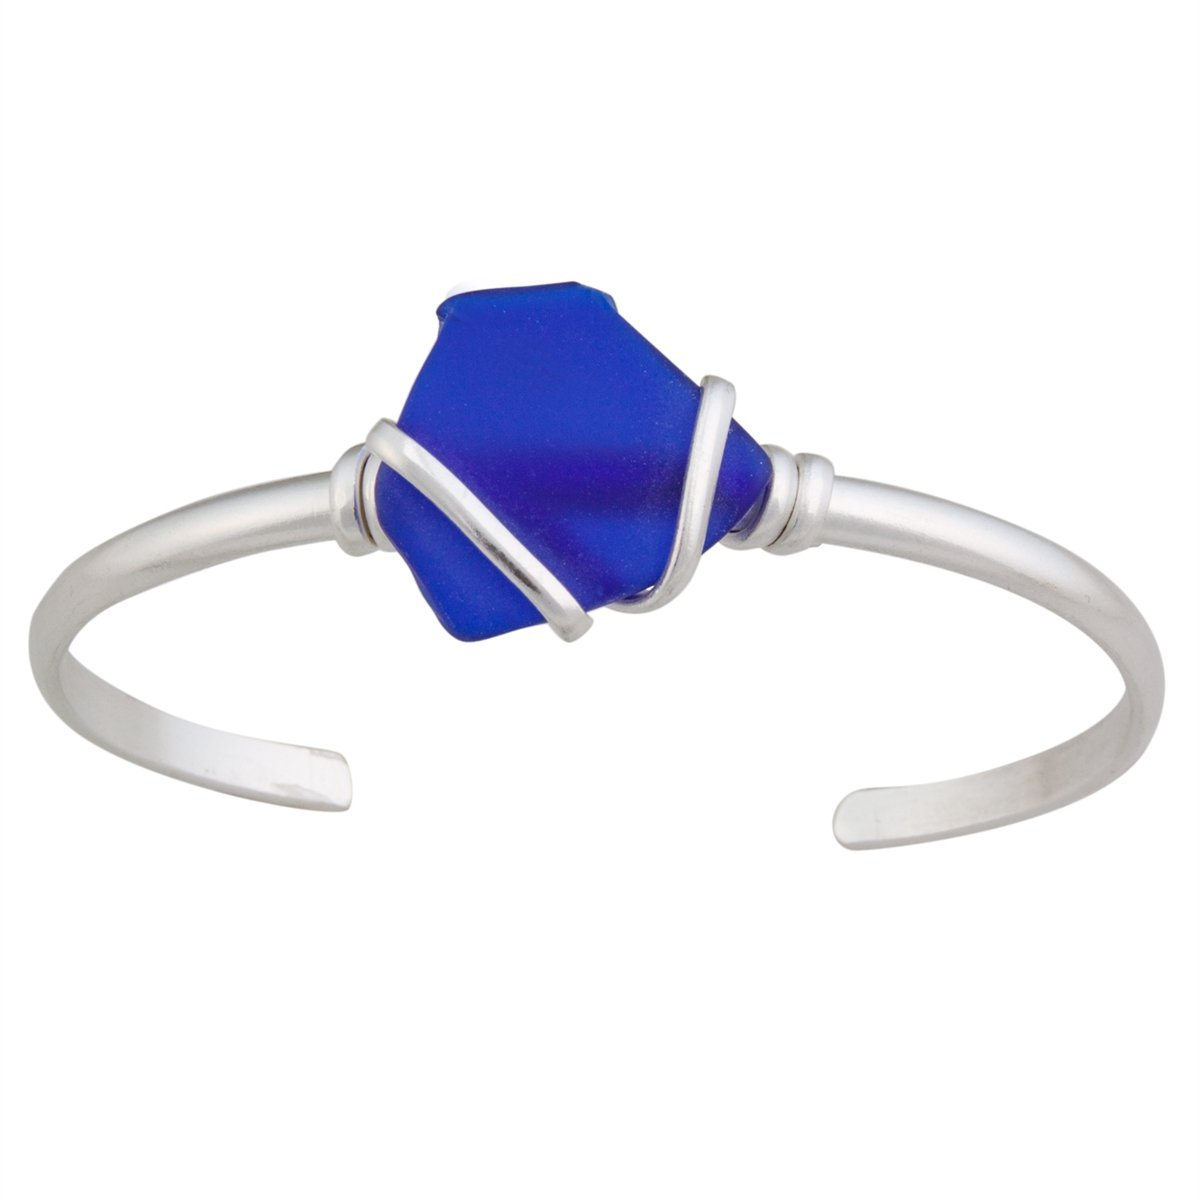 Alpaca Recycled Glass Mini Cuff - Cobalt Blue | Charles Albert Jewelry